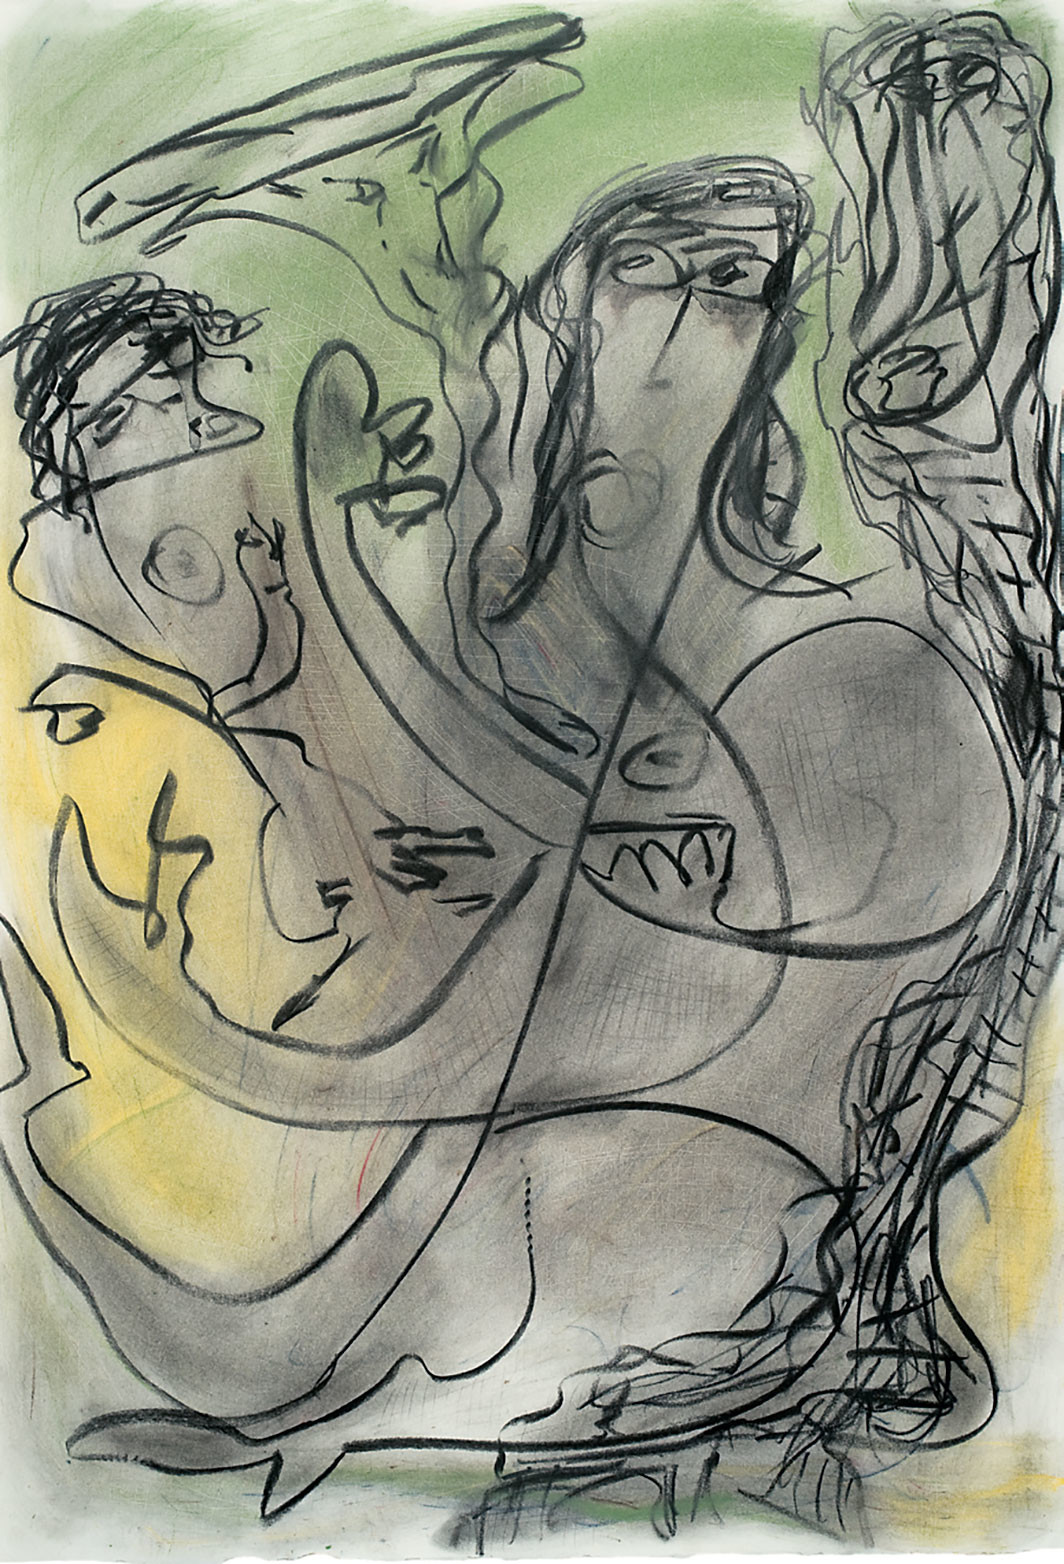 "Thornton Dial, Untitled (Mother and Child), 1995, charcoal and pastel on paper, 41 3⁄4 × 29 1⁄3"". Courtesy Ricco/Maresca Gallery, New York"